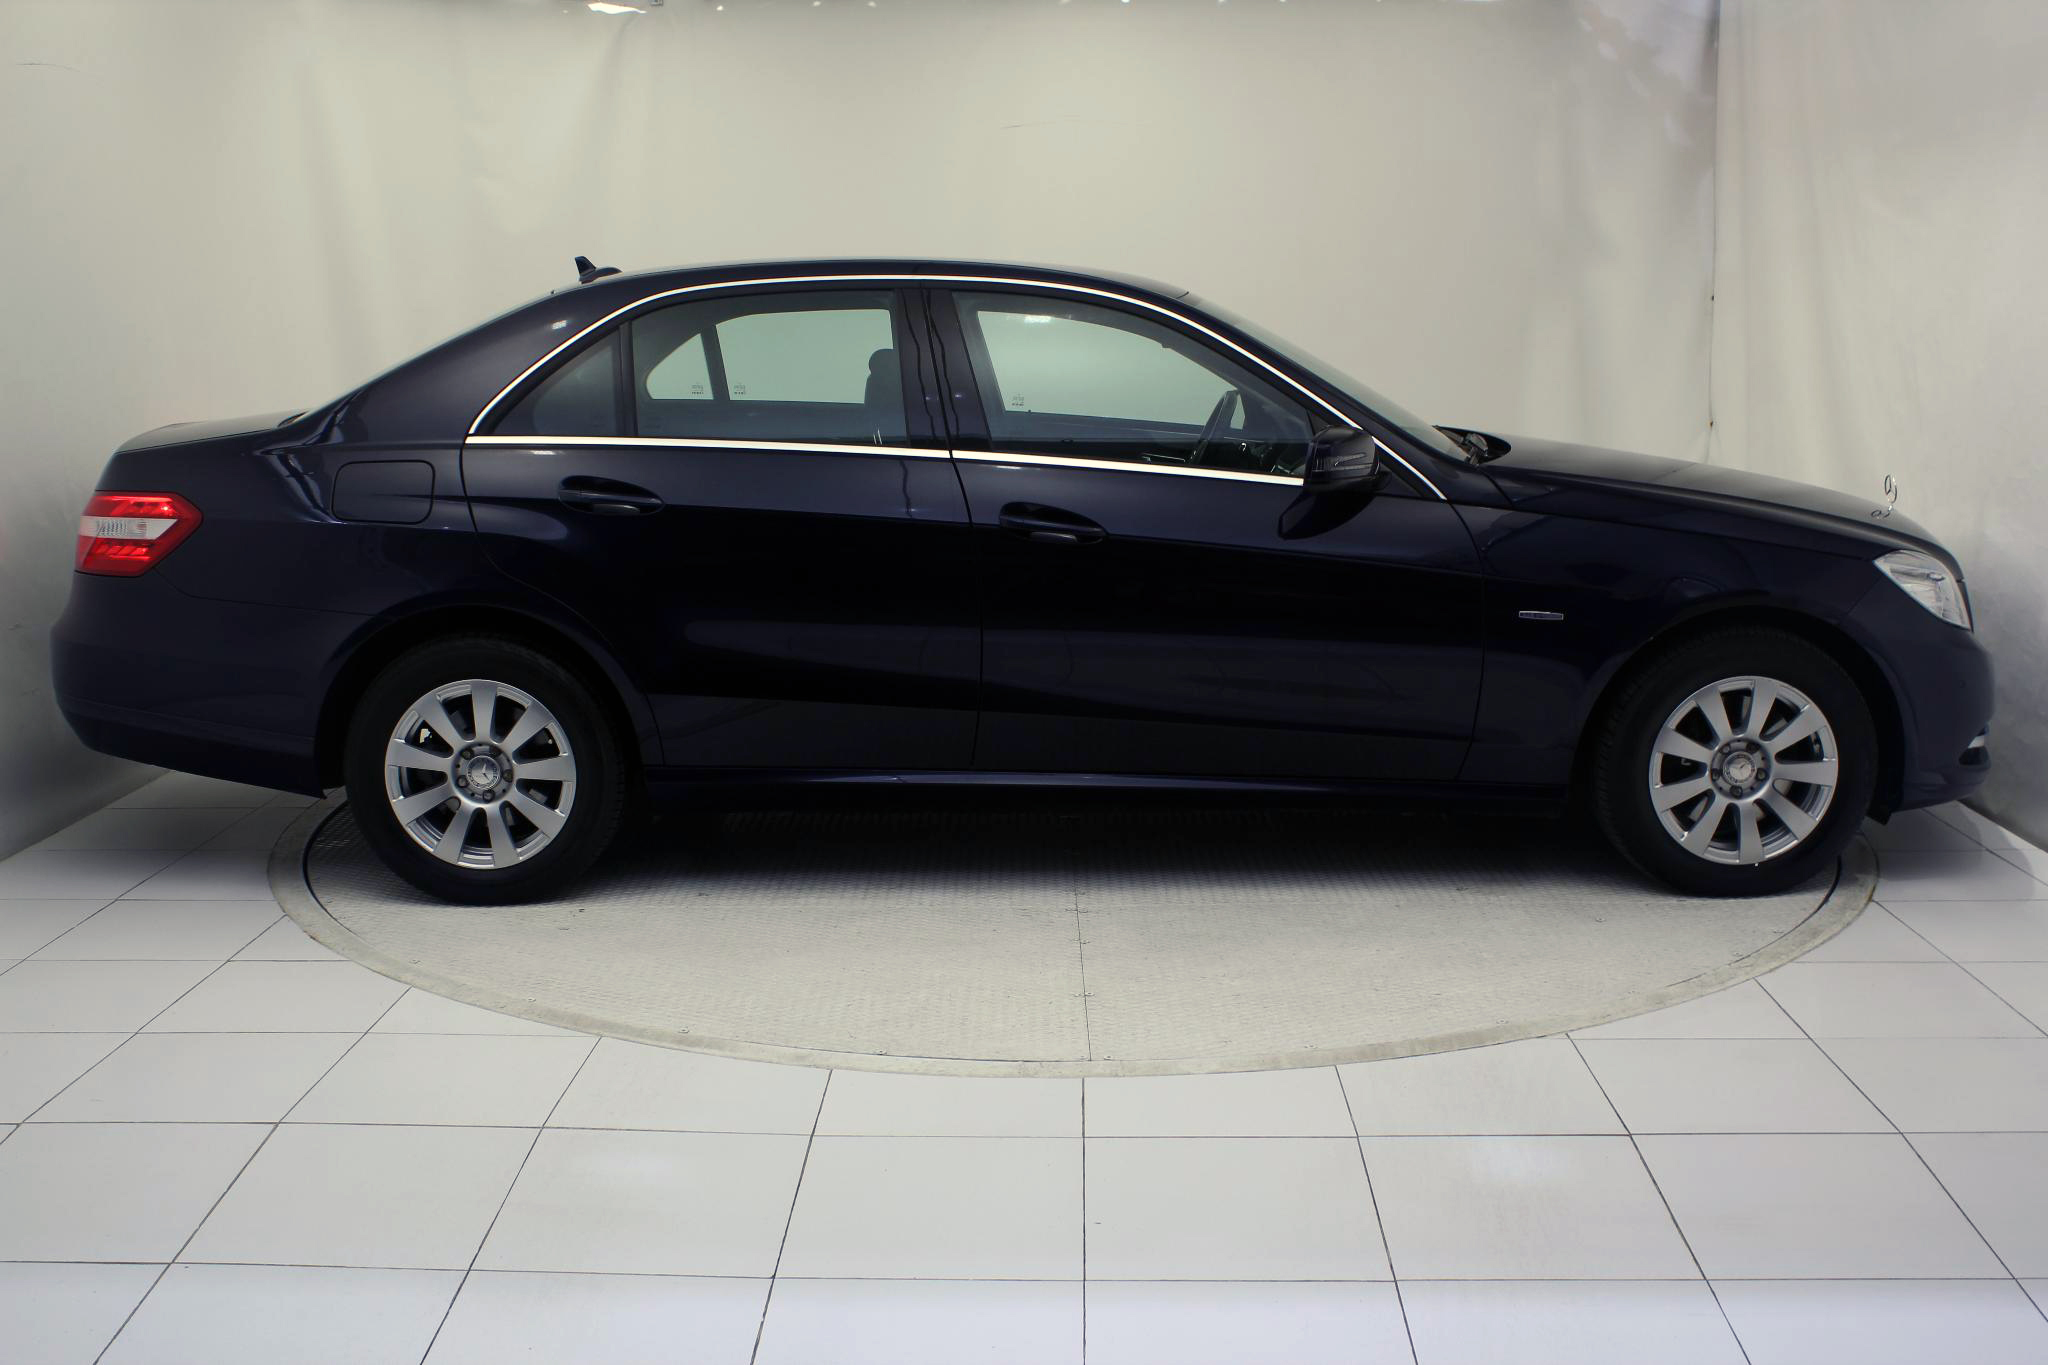 Mercedes-Benz Clase E CLASE E 250 CDI BLUE EFFICIENCY AUTO imagen 4